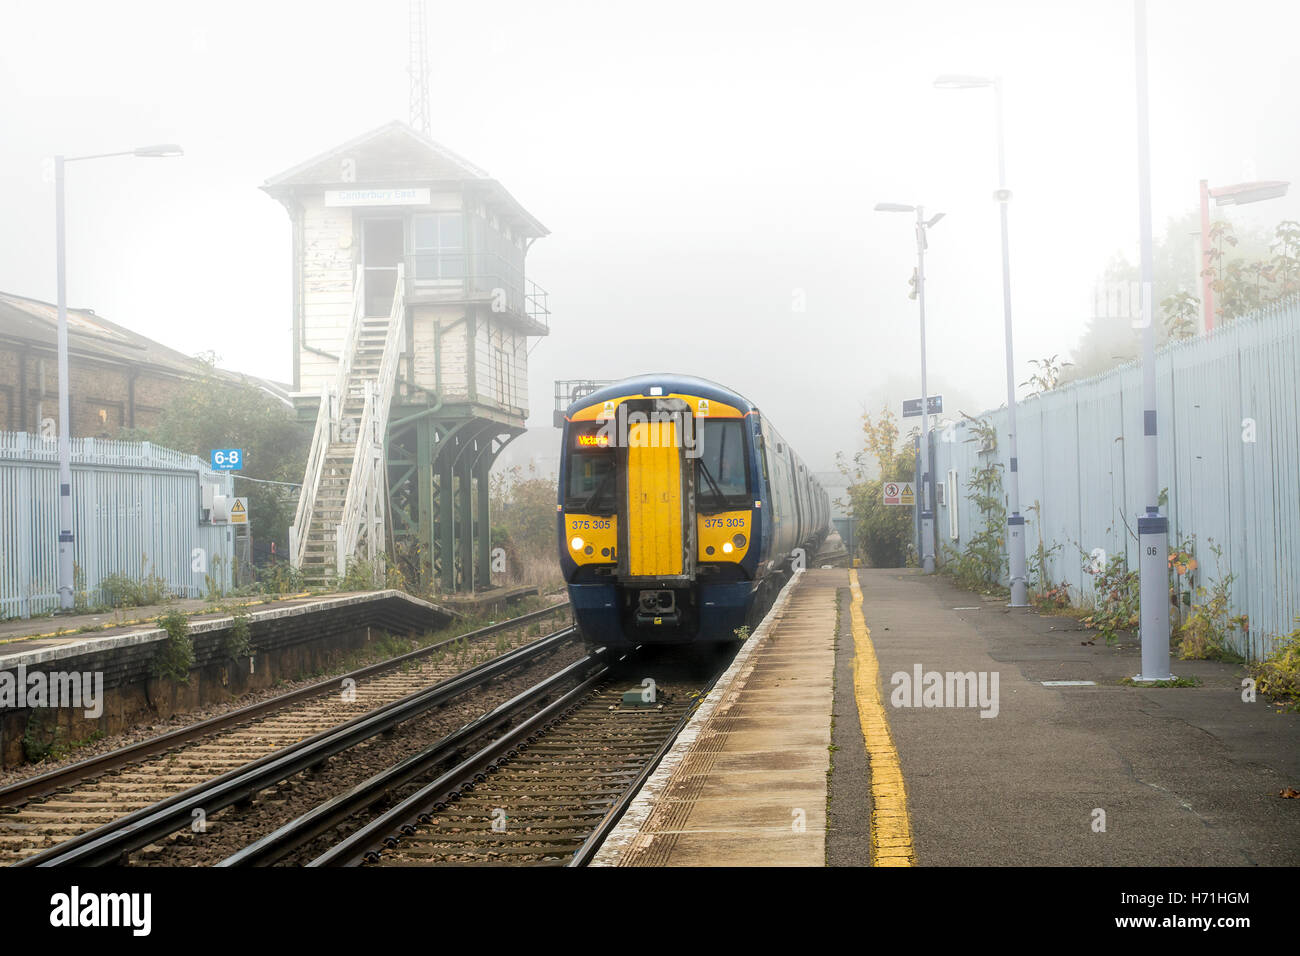 Southeastern Train Emerging Through Fog Dover to London Line. - Stock Image